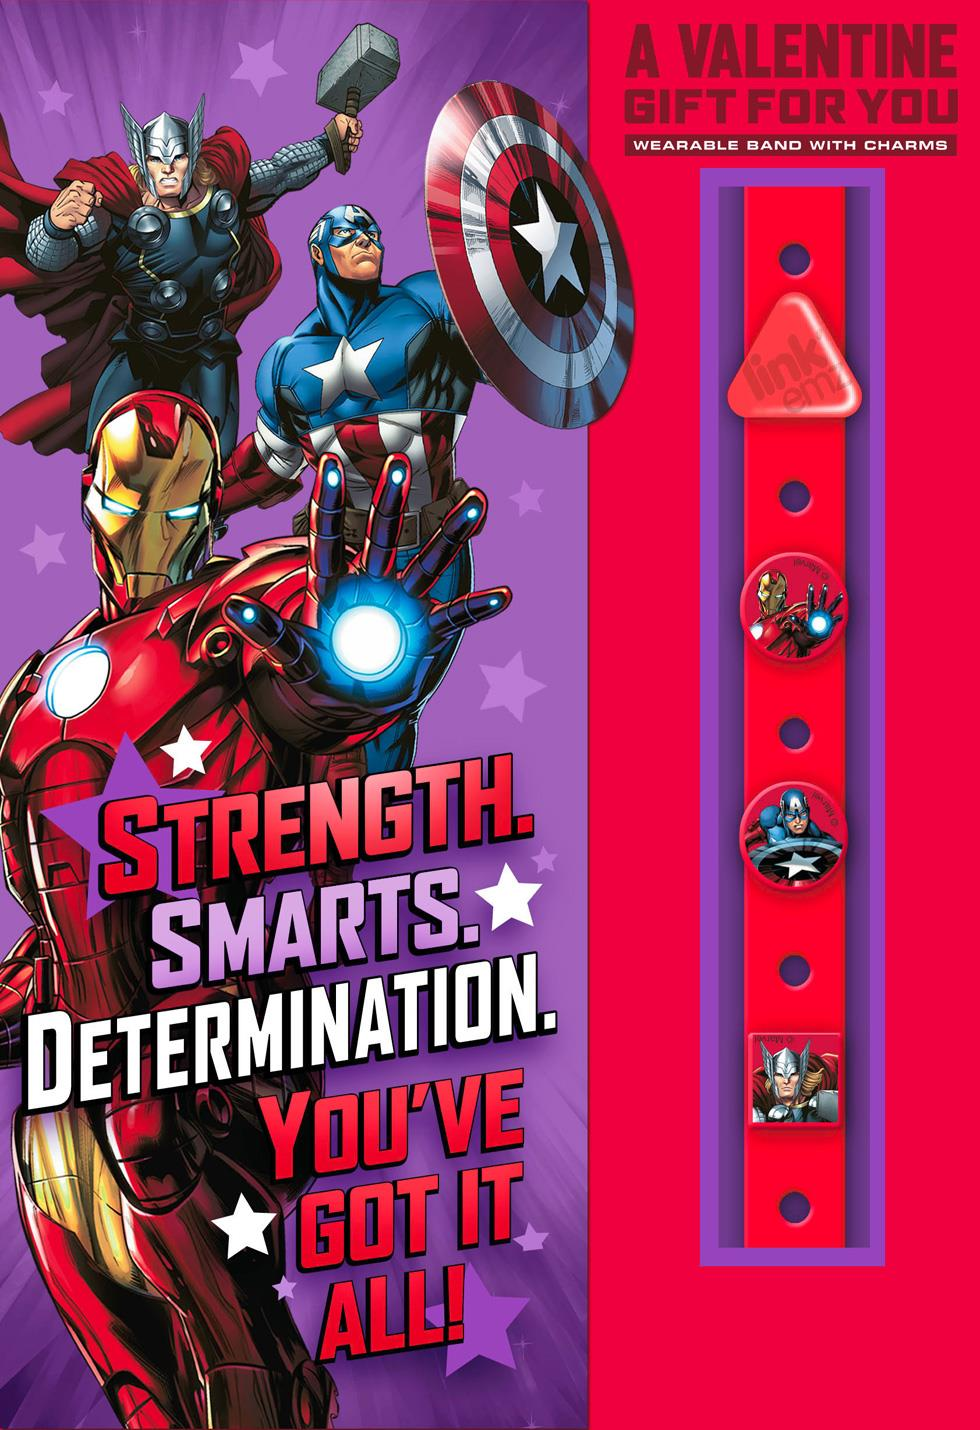 Marvel Avengers Valentines Day Card With Linkemz